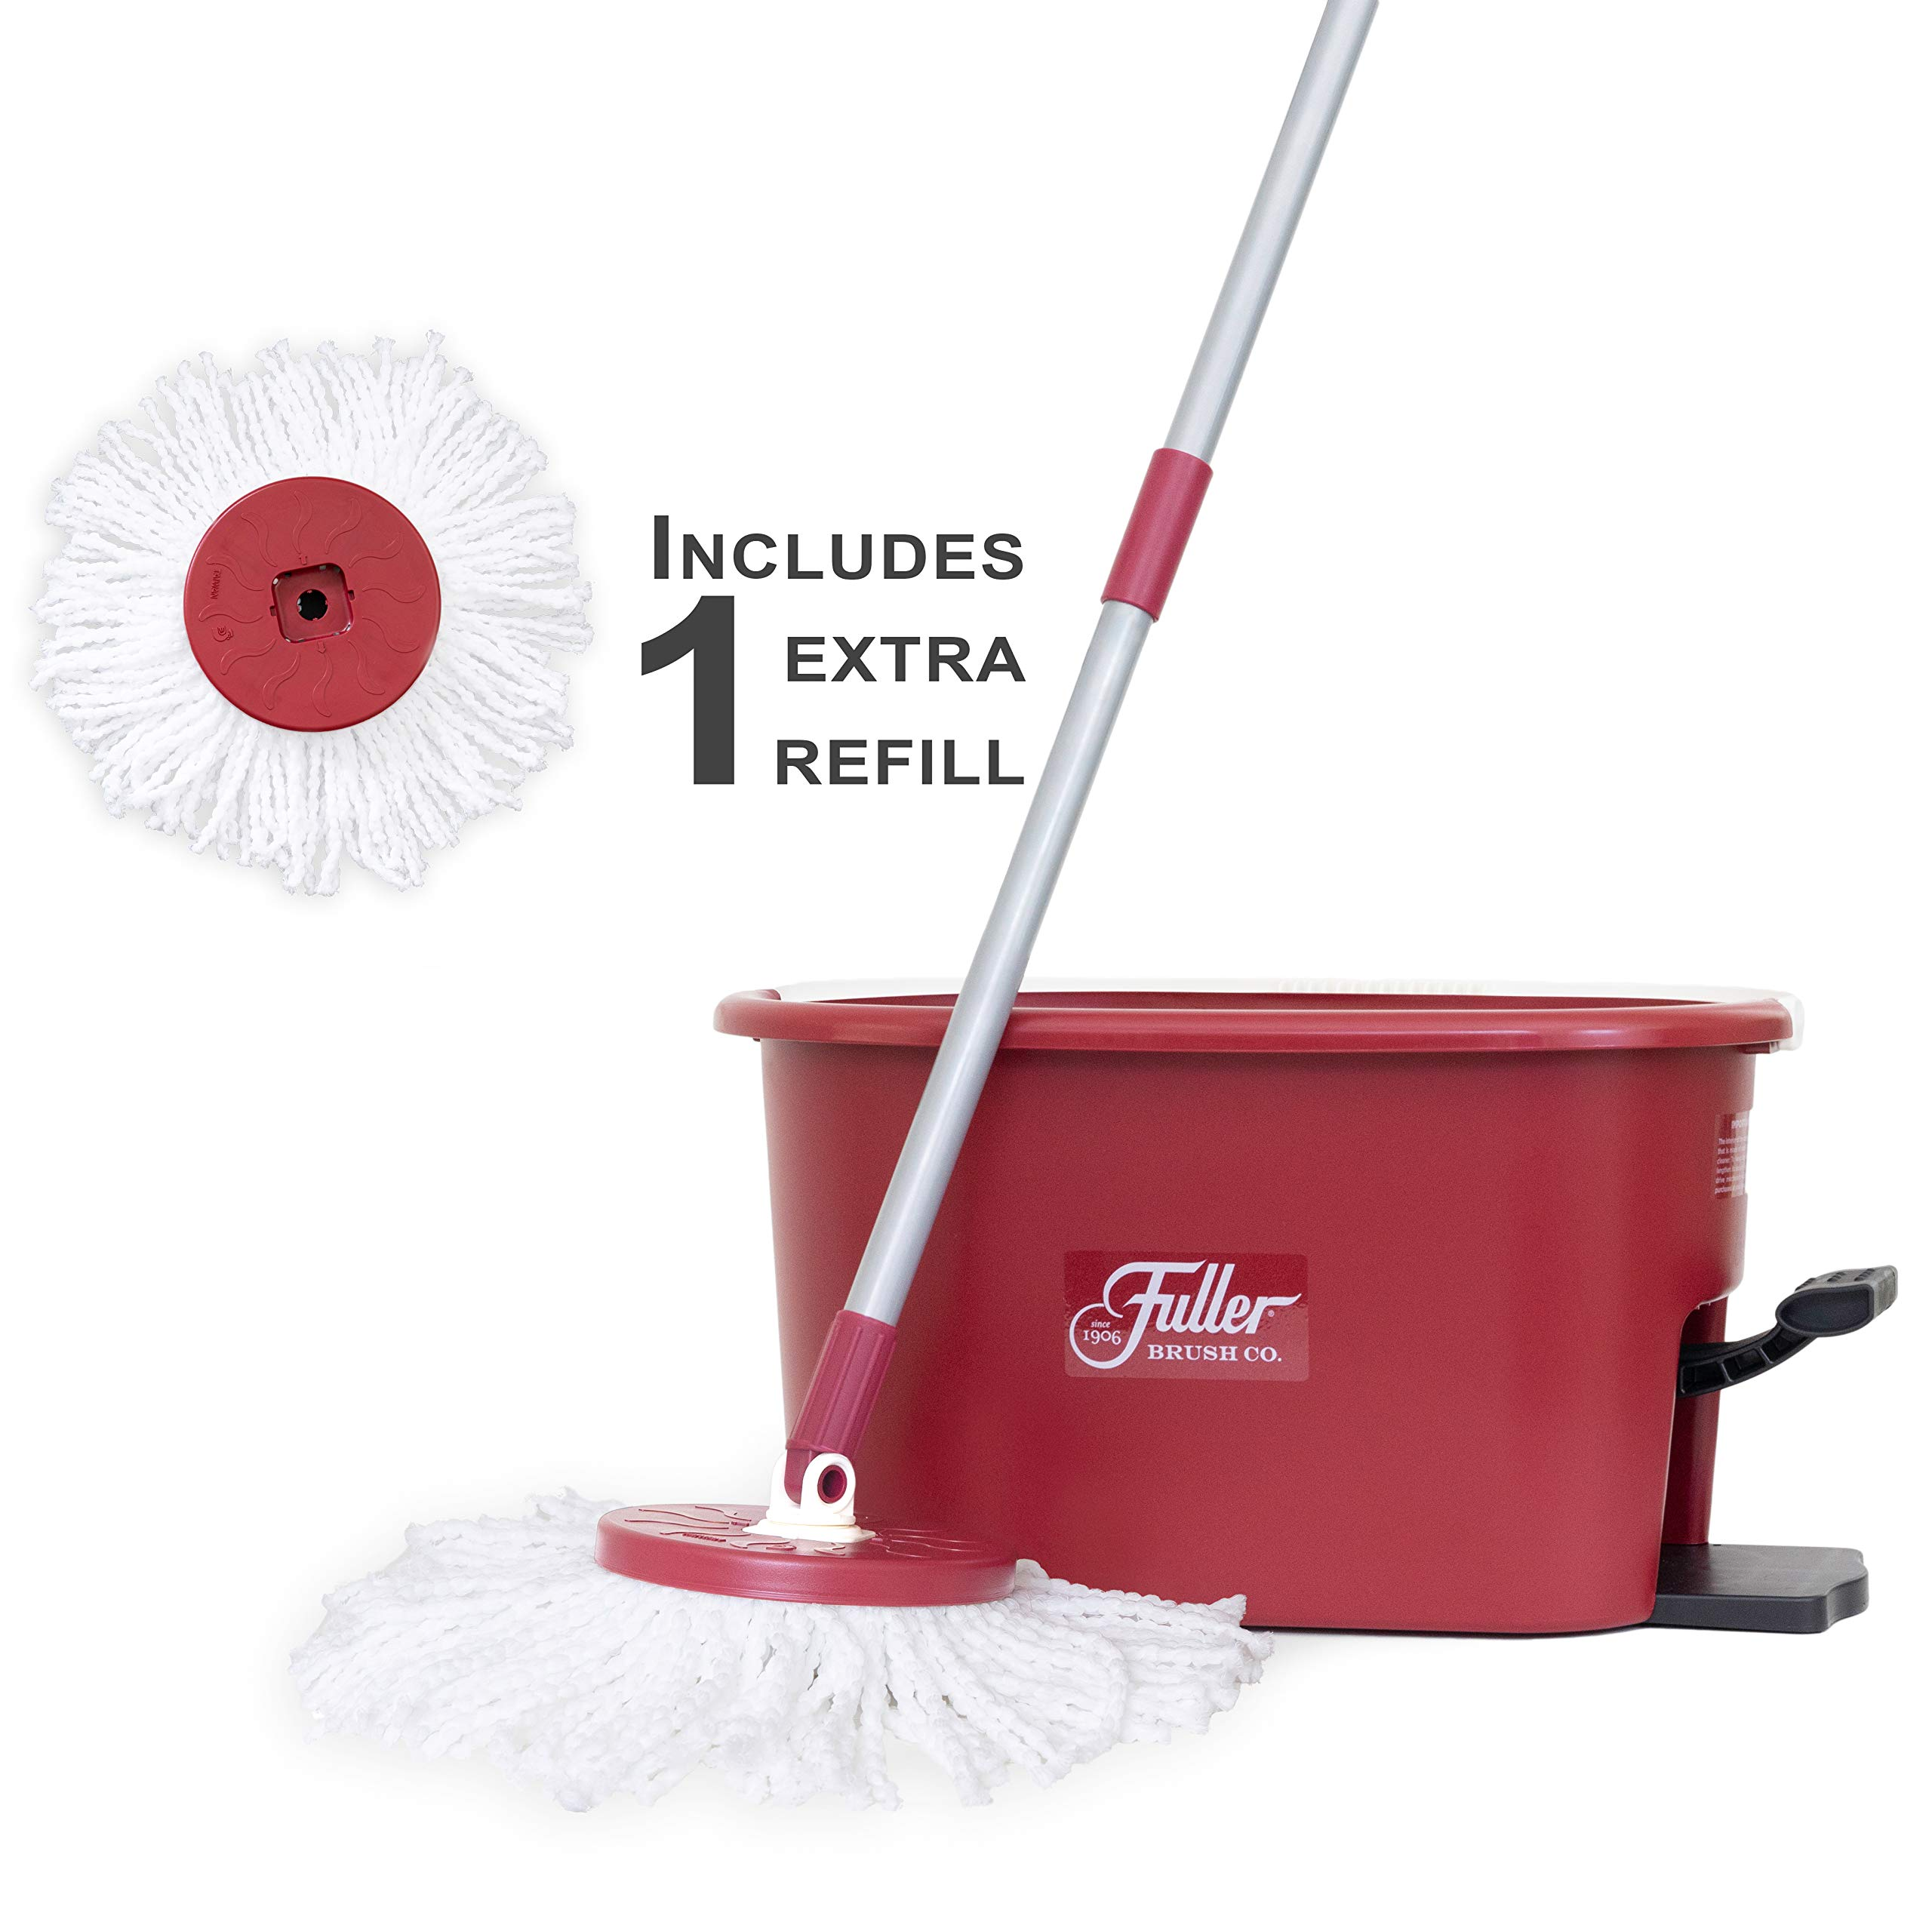 Fuller Brush Spin Mop Exclusive Bucket System - Easy Wring, 360° Spin - Streak Free Floor Cleaning - Ruby Red (1 Extra Refill Mop Head) by Fuller Brush (Image #1)